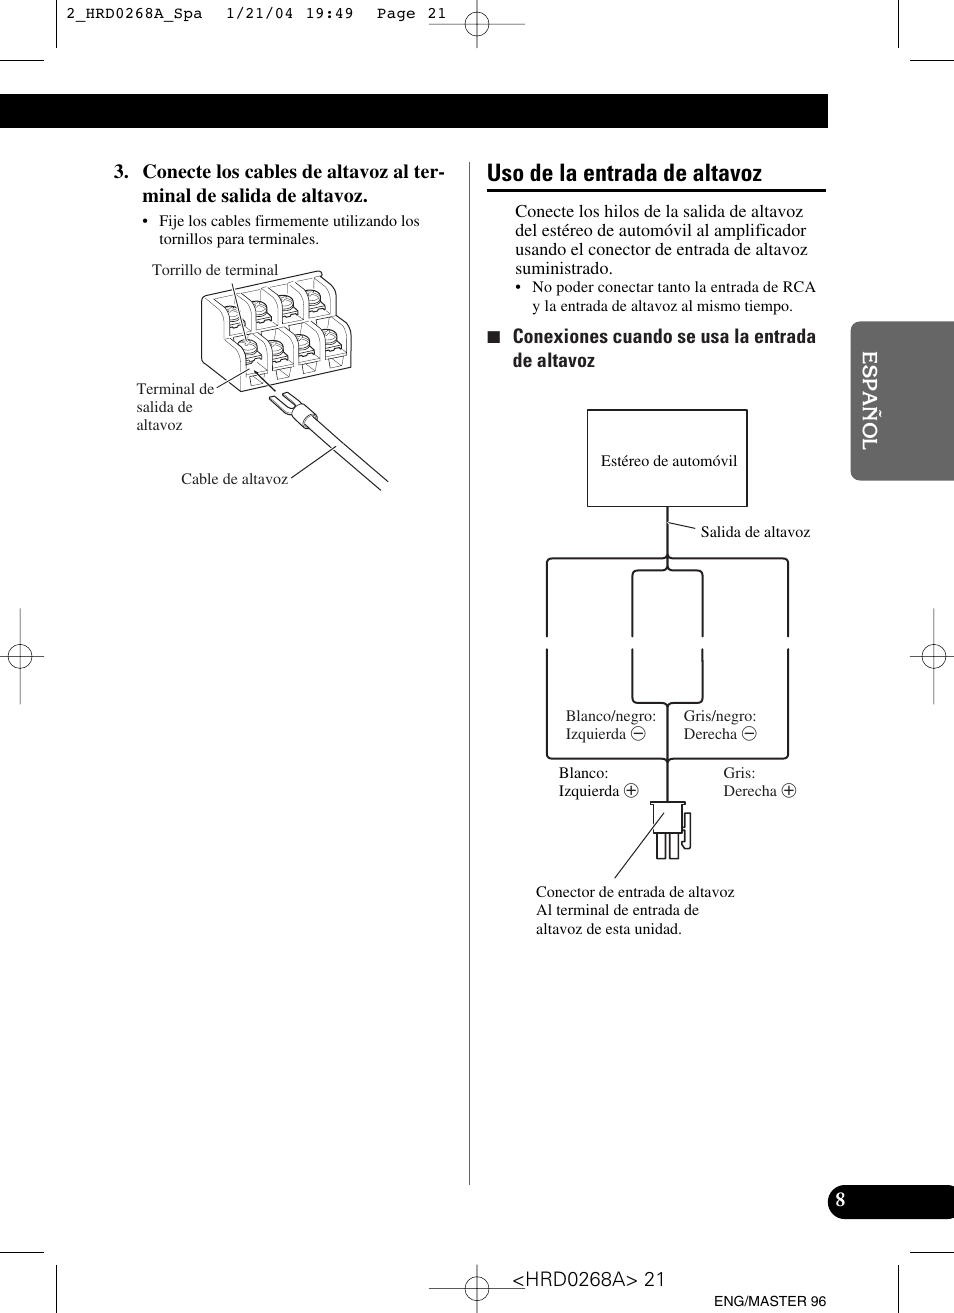 Pioneer Gm 4000f Wiring Diagram Schematic Diagrams Sterling Lt9500 Uso De La Entrada Altavoz User Manual Page